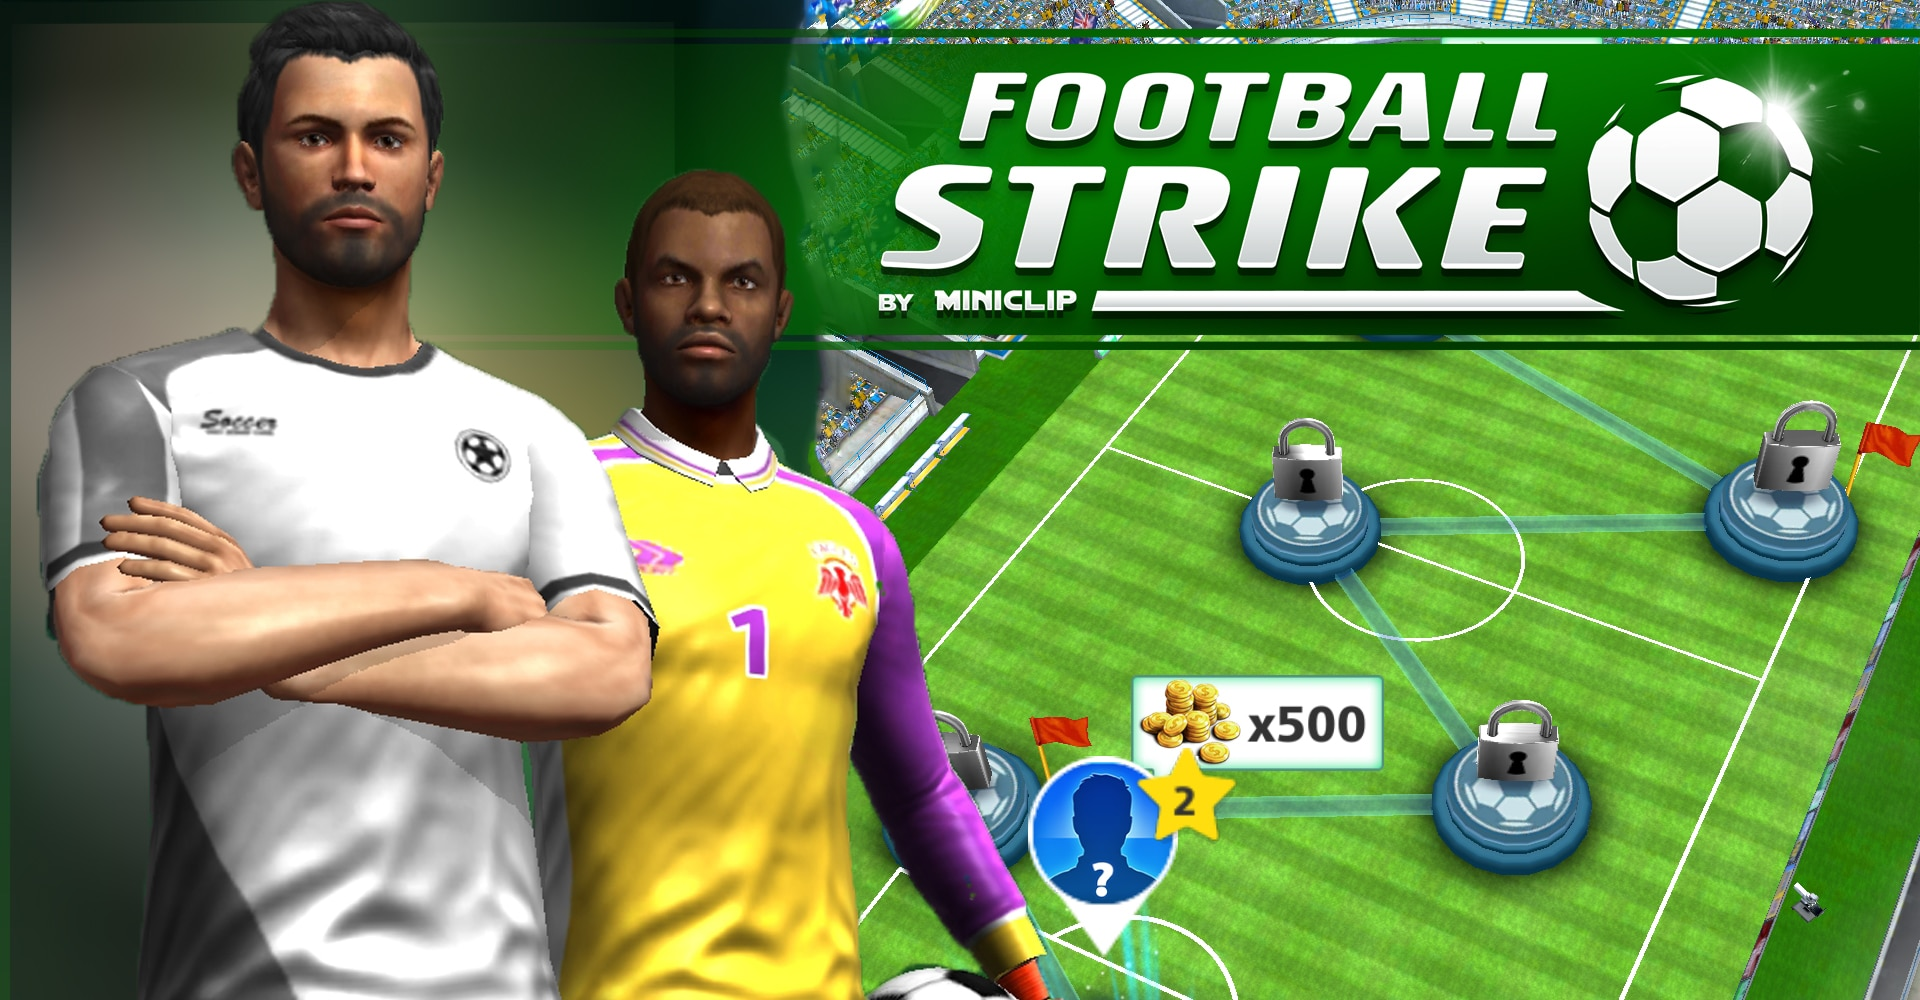 Download FOOTBALL STRIKE APK - For Android/iOS 10